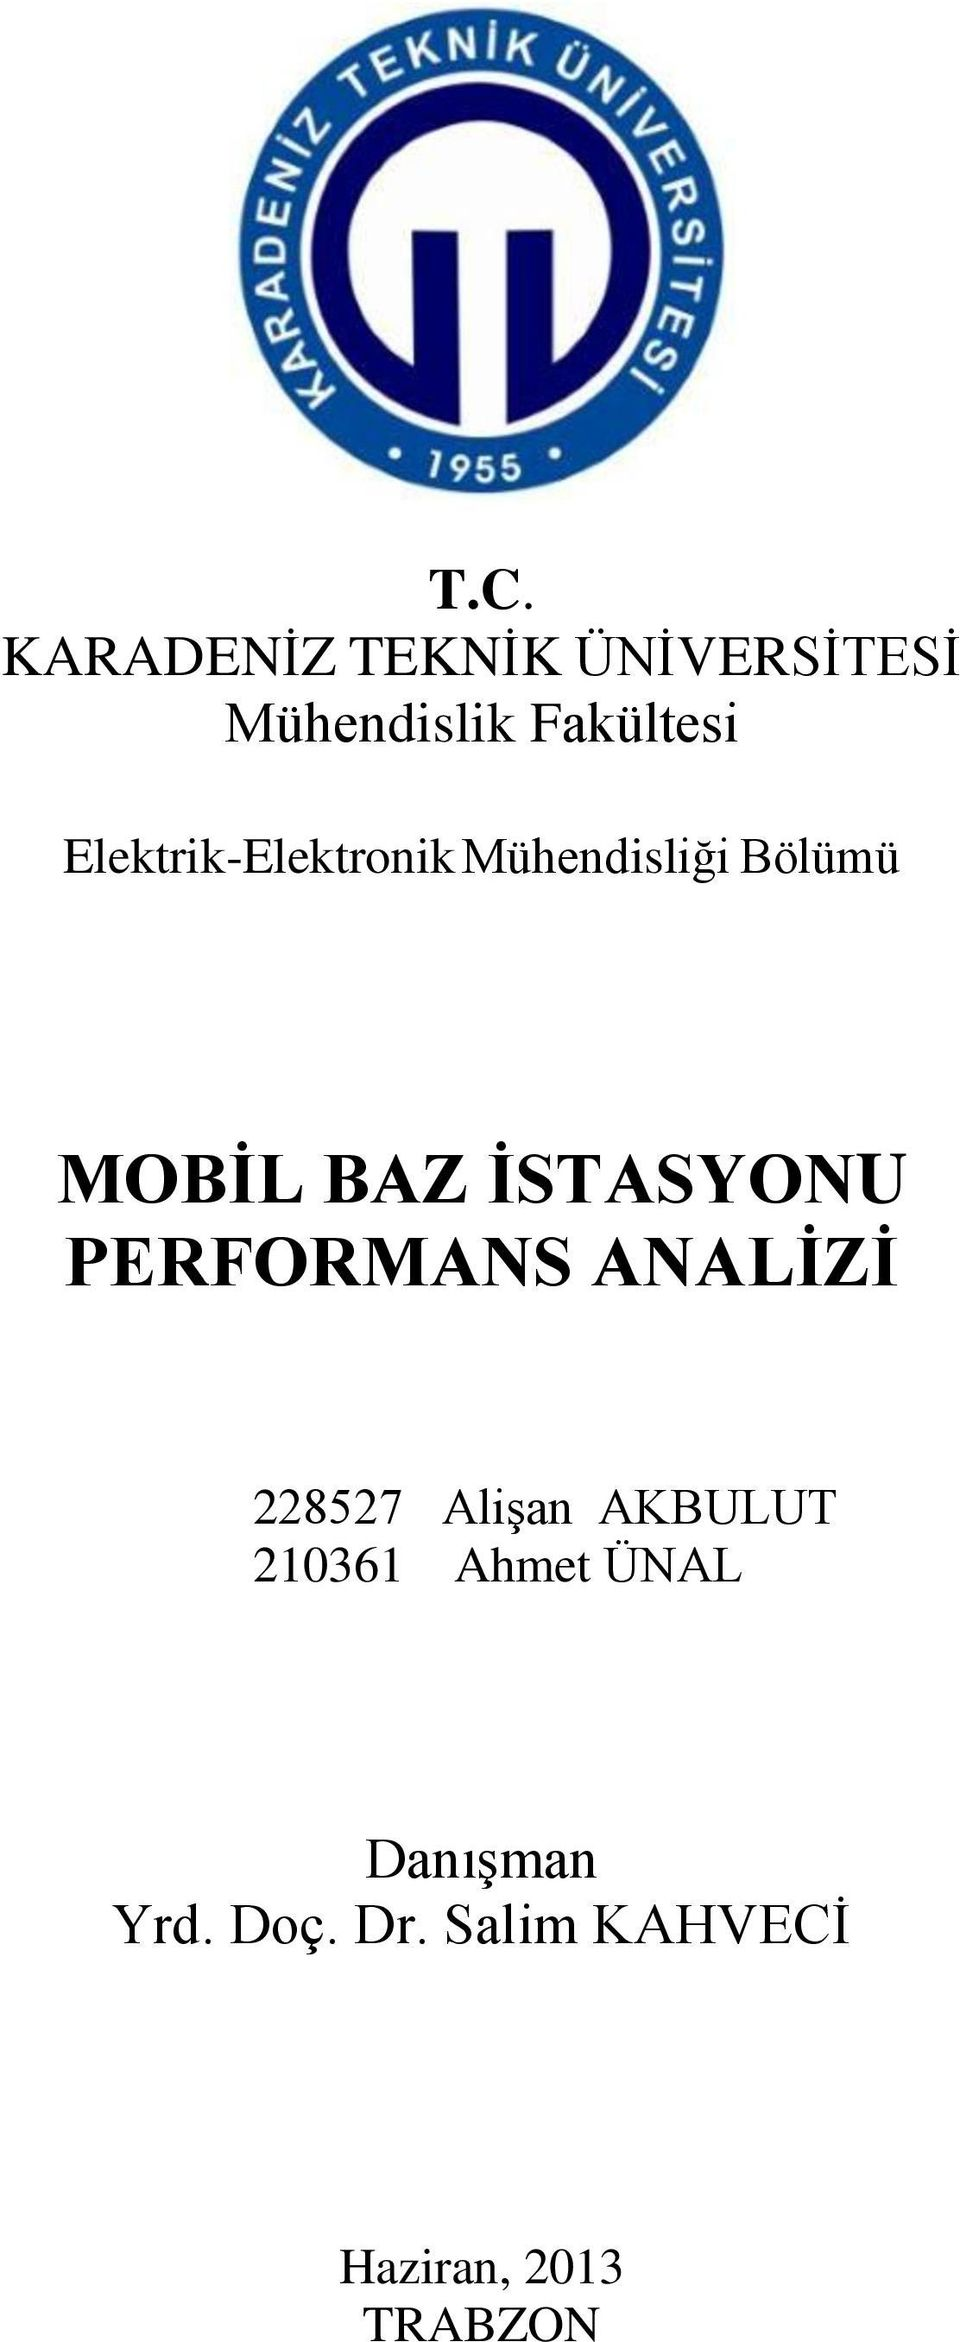 PERFORMANS ANALİZİ 228527 Alişan AKBULUT 210361 Ahmet